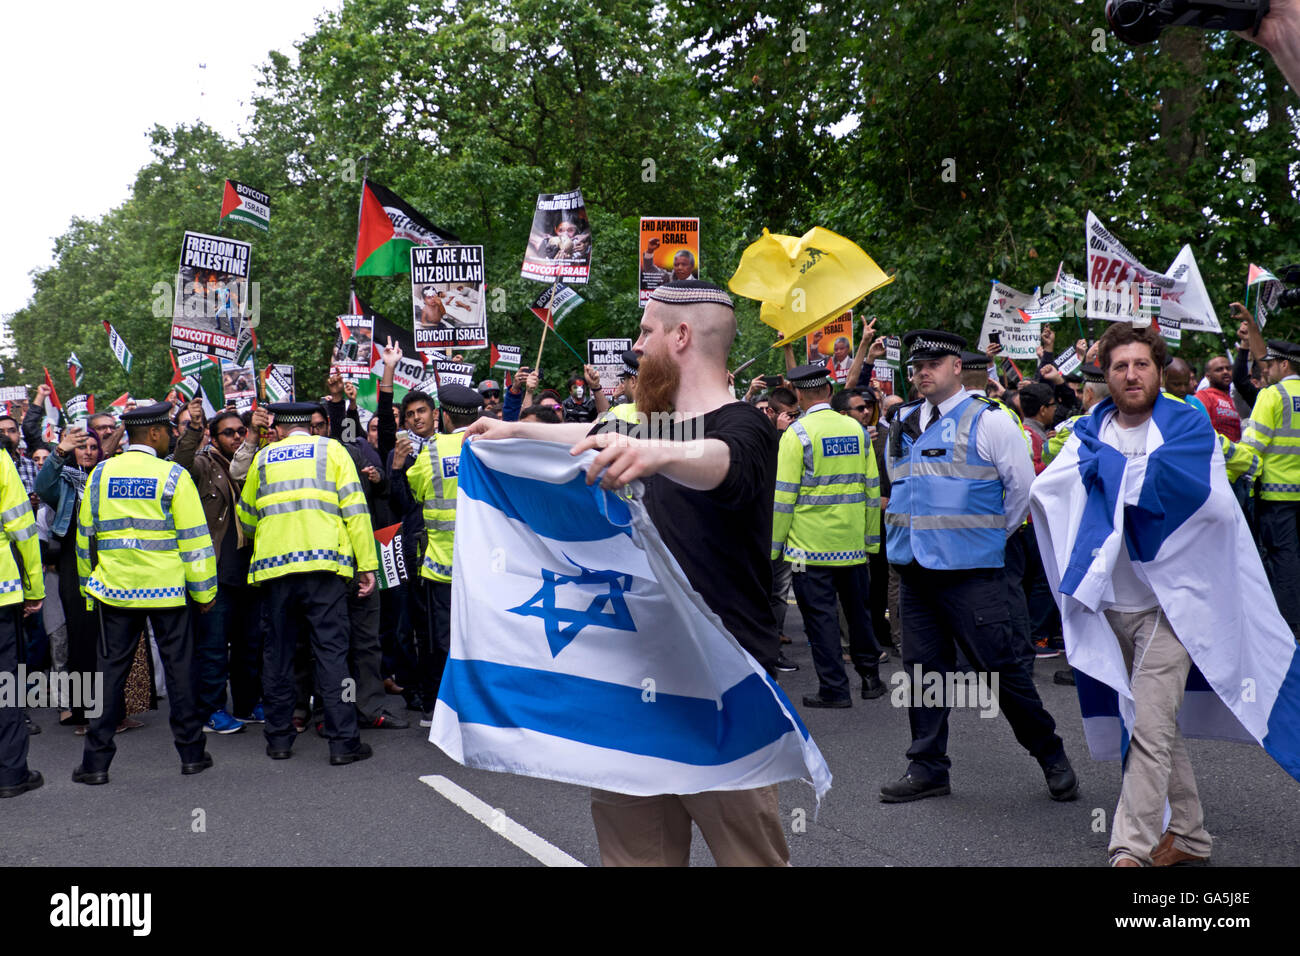 Israeli demonstration counter- protest  to Pro-Palestinian group commemorating Al-Quds Day. - Stock Image